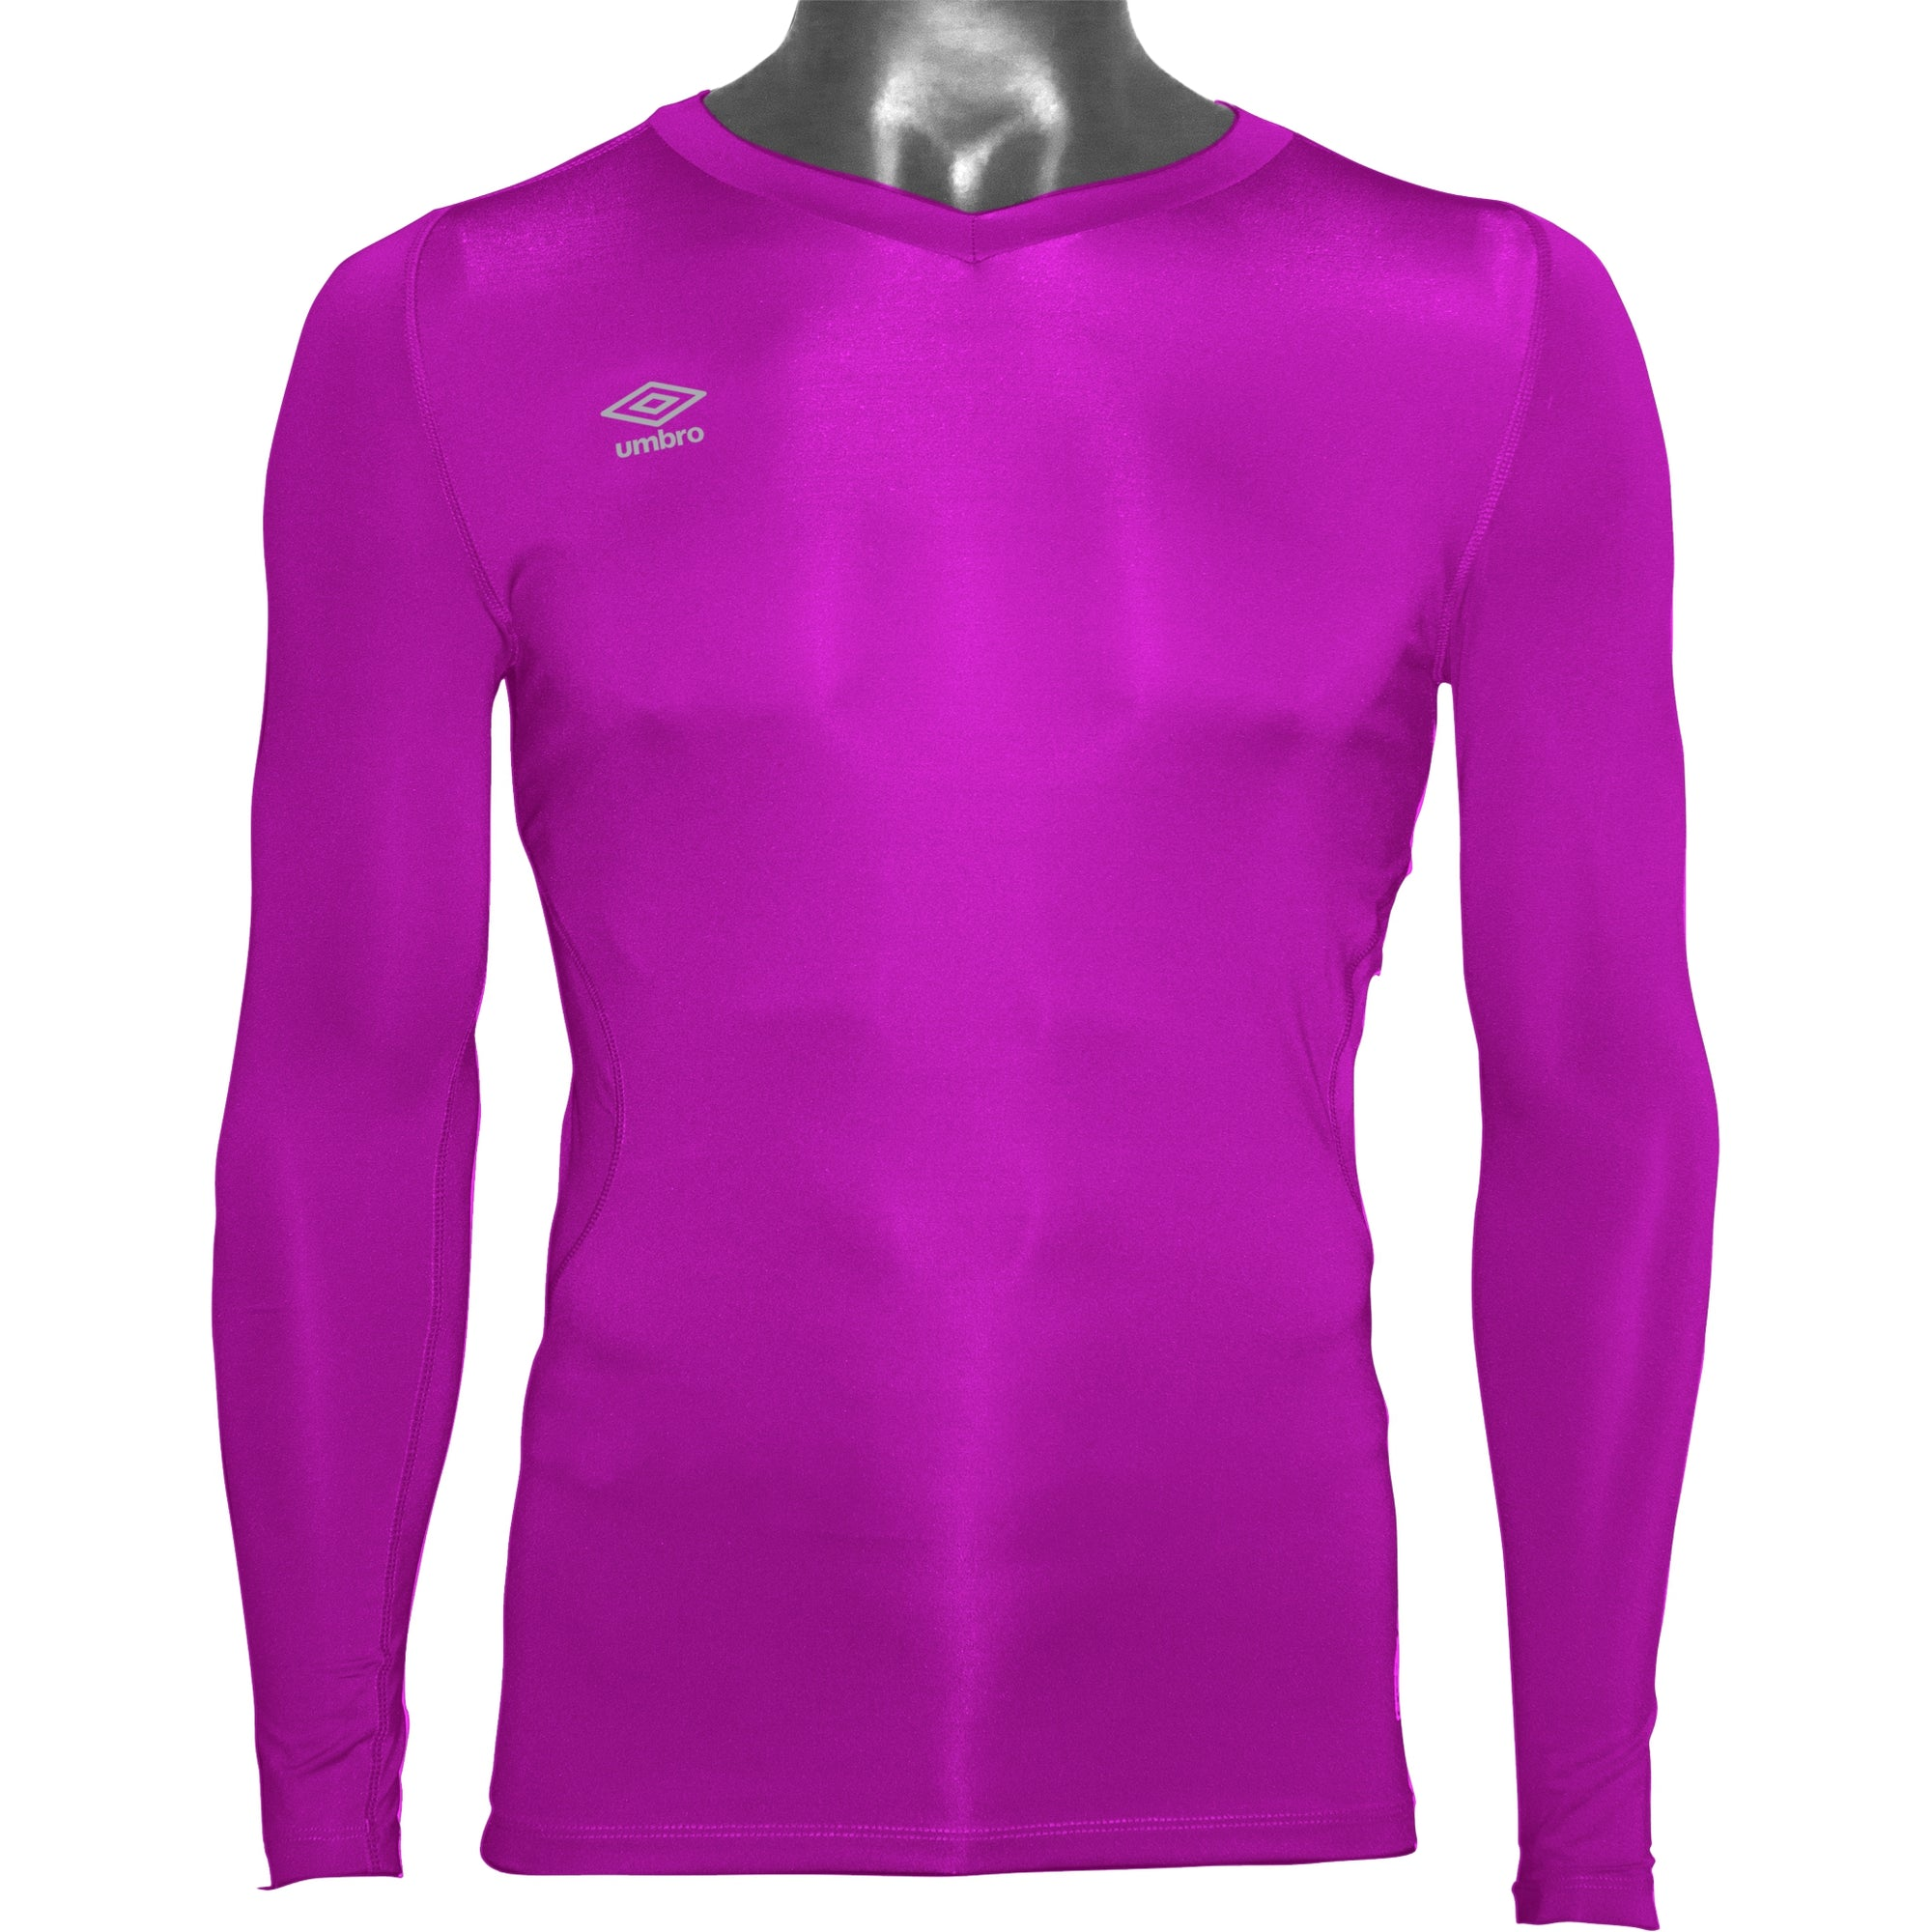 Umbro Elite V Neck baselayer in purple cactus with reflective stacked diamond logo on right chest